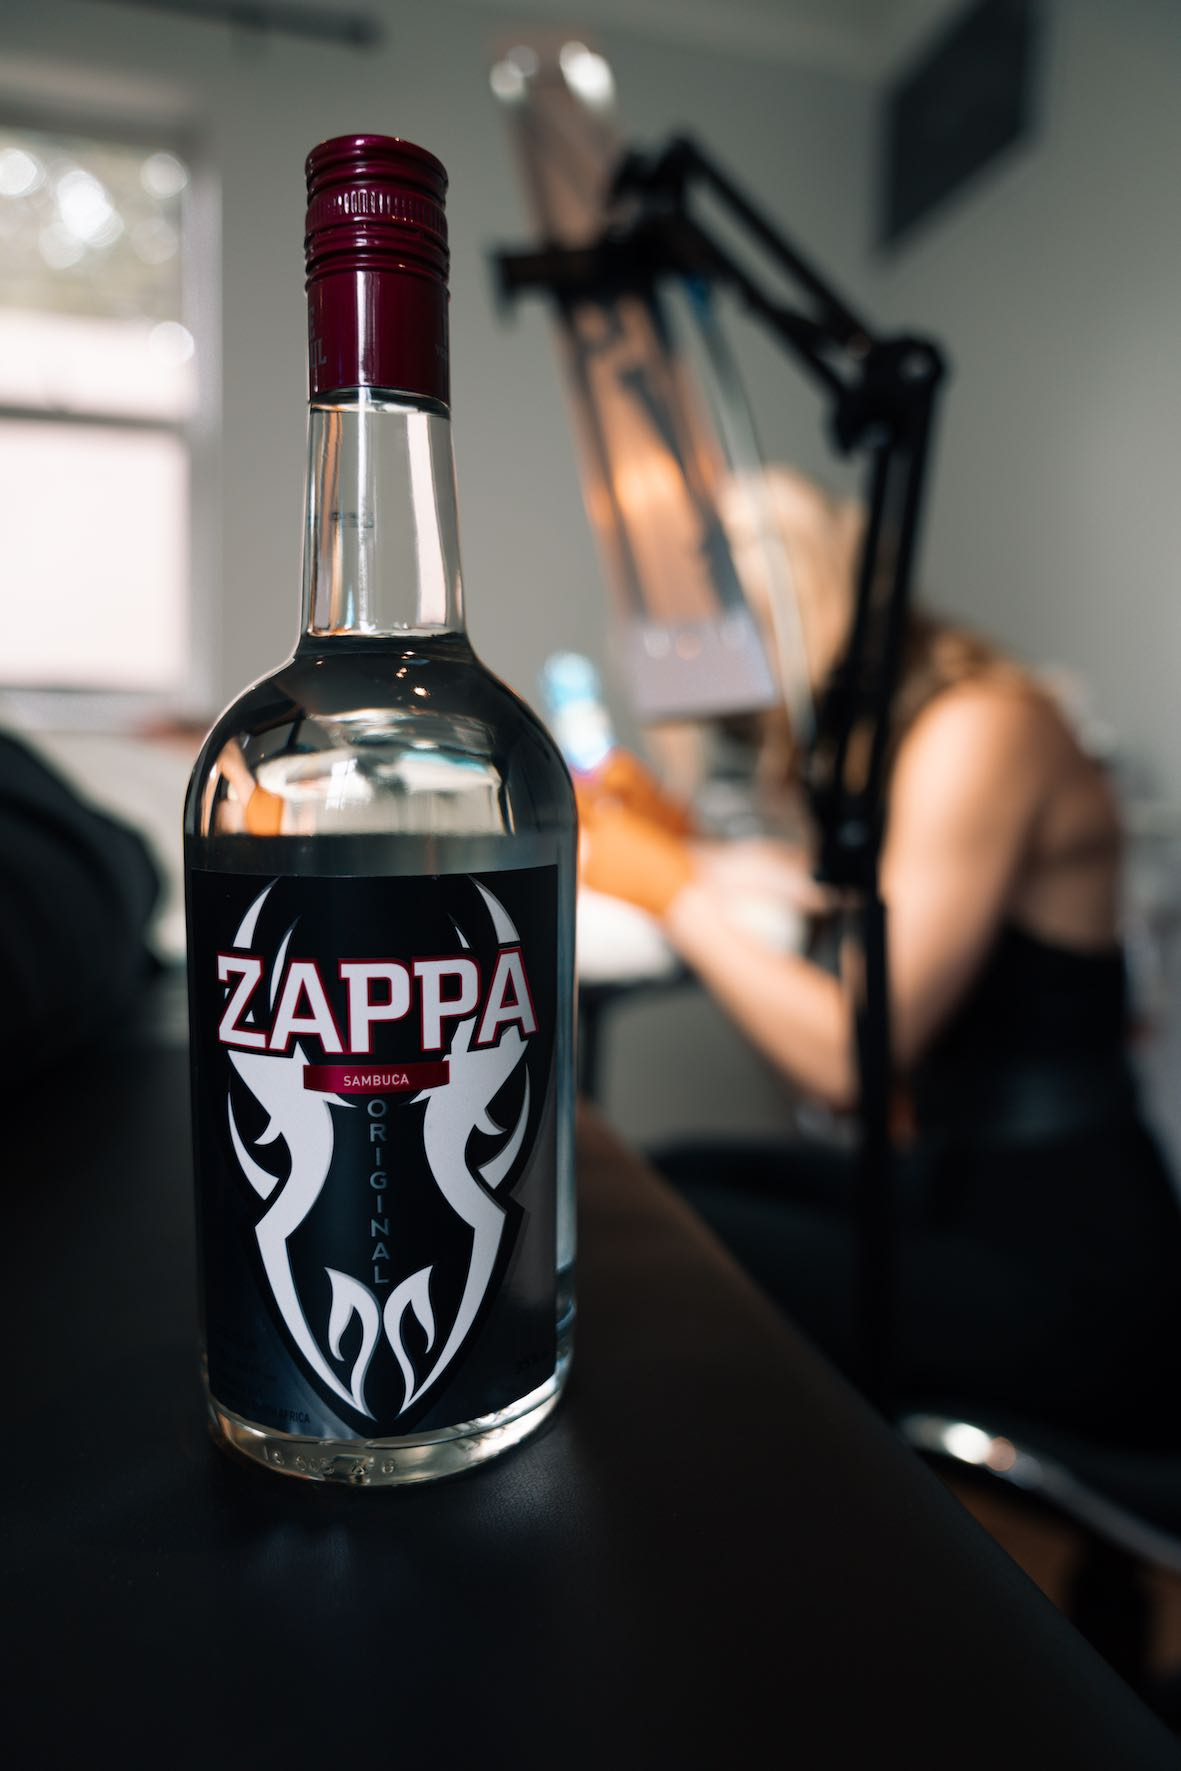 Tattoo artist features brought to you by Zappa Sambuca